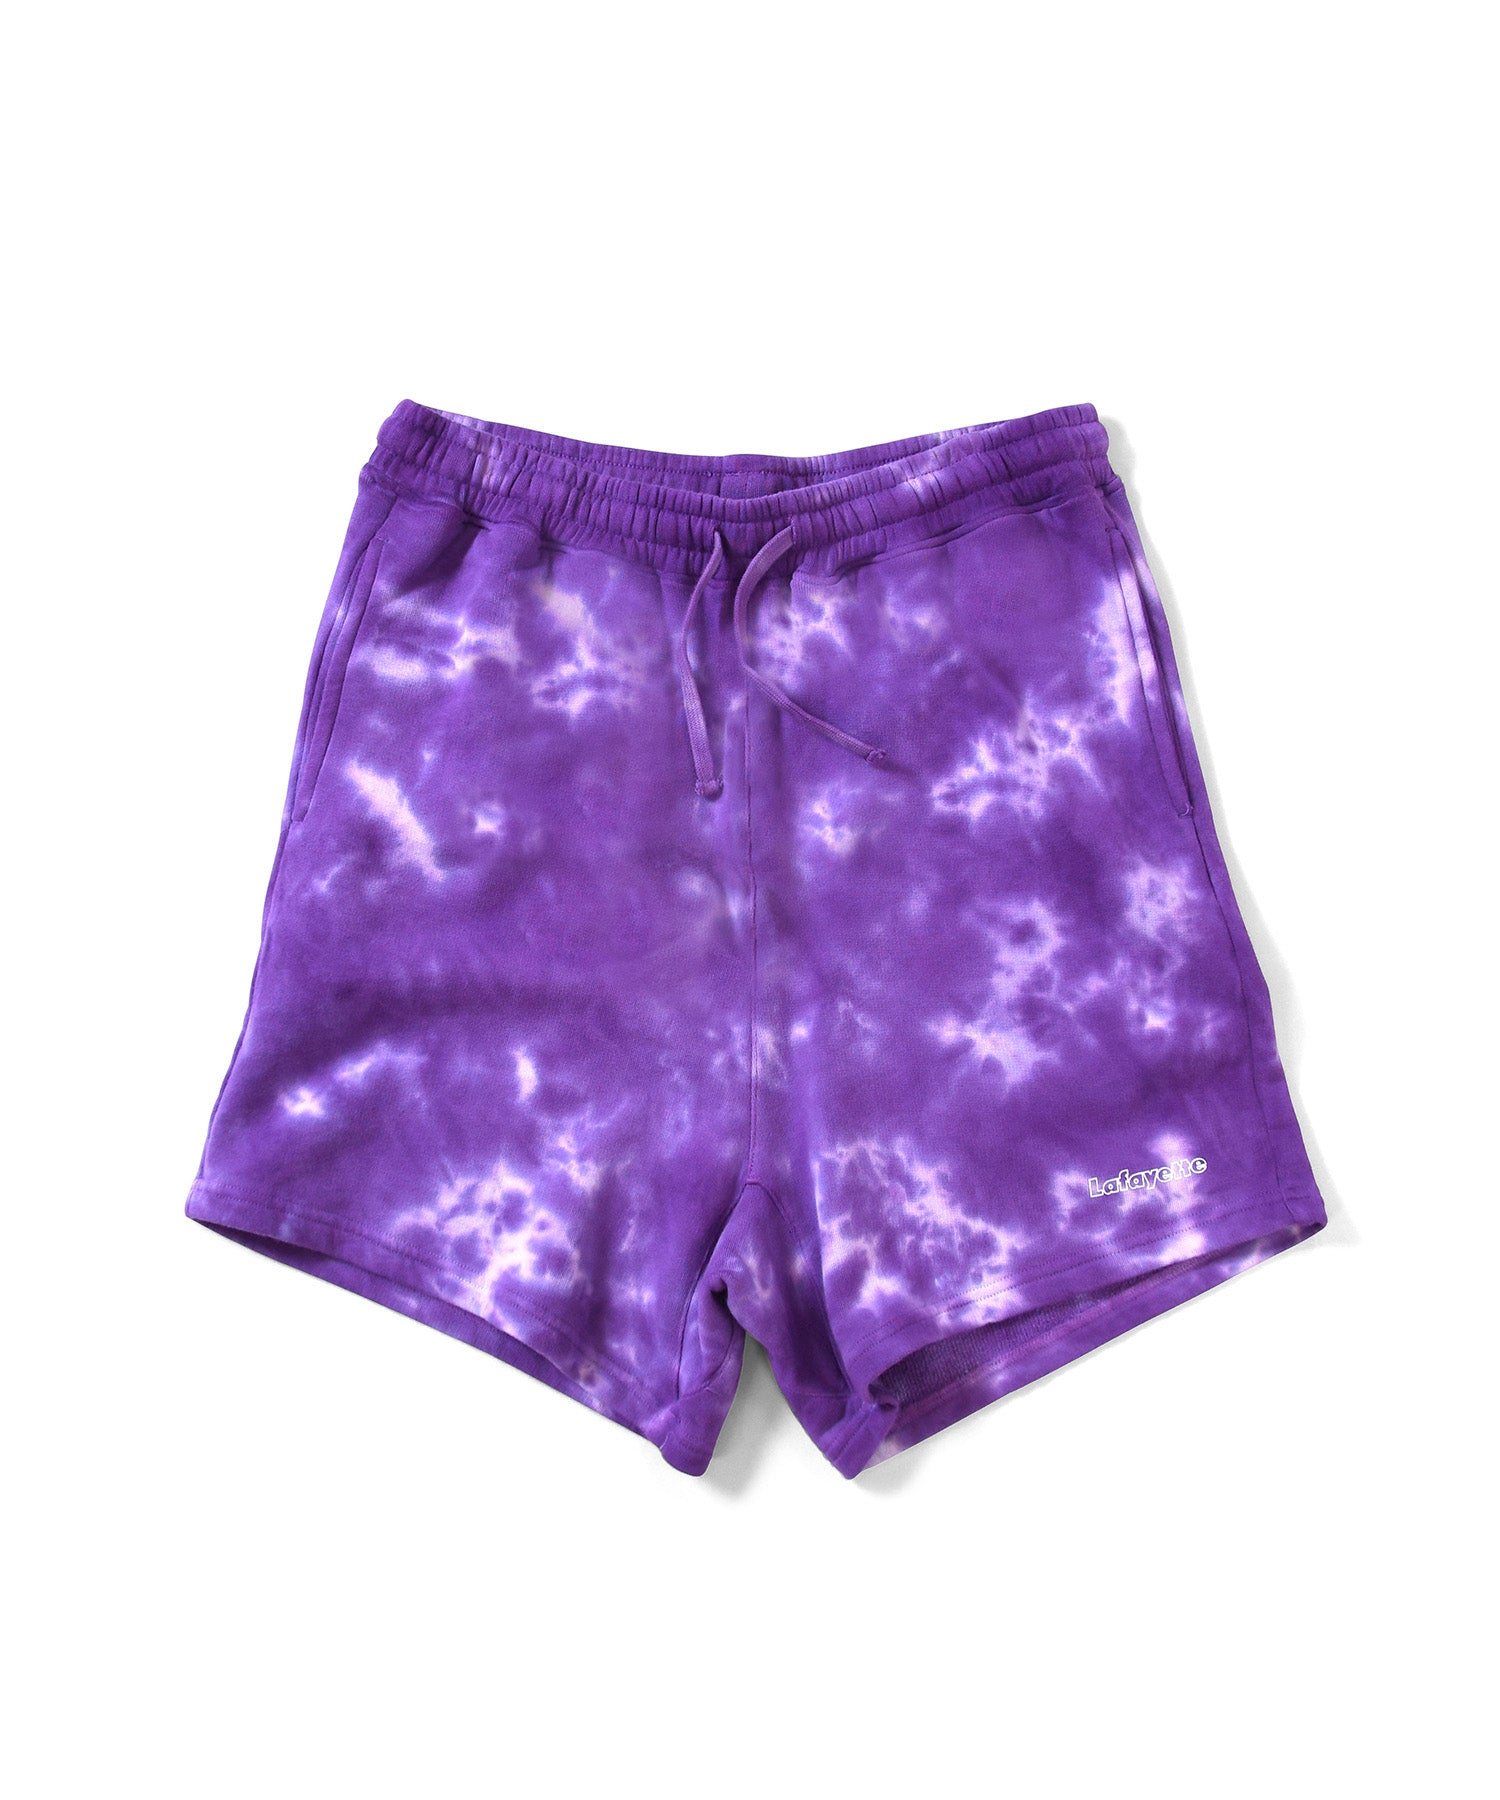 Lafayette OUTLINE LOGO TIE DYED SWEAT SHORTS LS201305 PURPLE